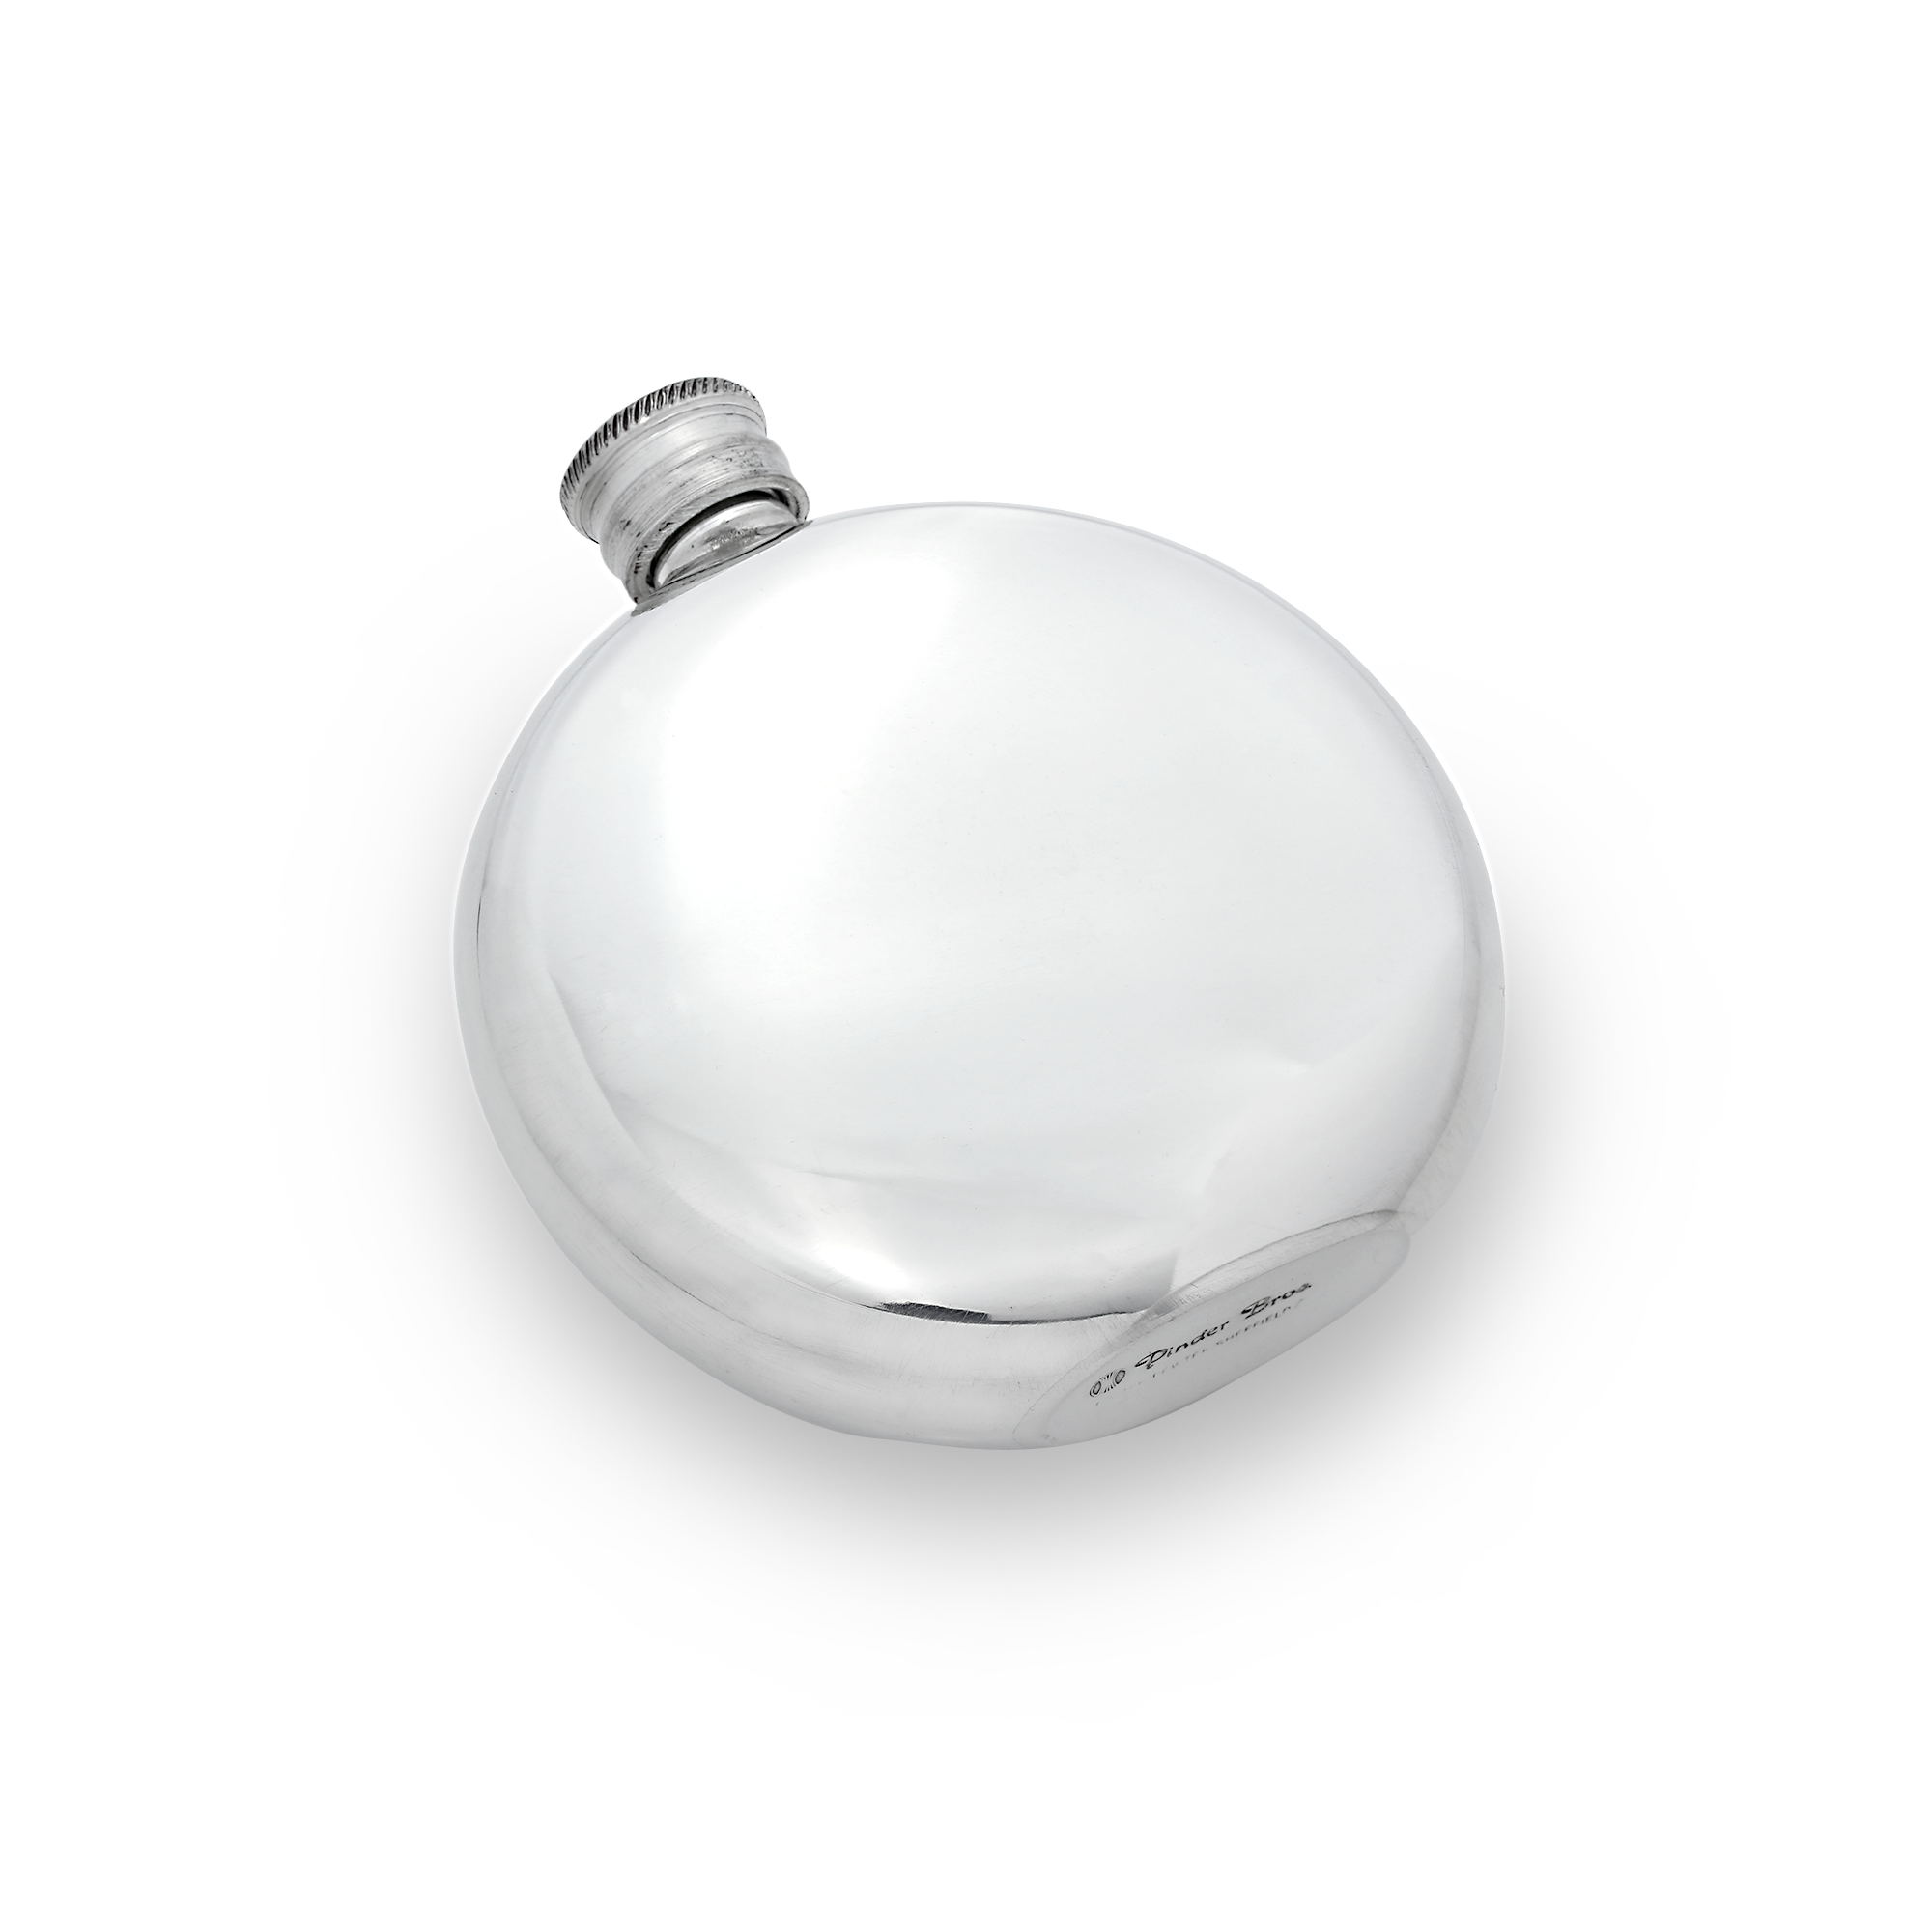 An image of 6oz Handmade Plain Round Pewter Engravable Hip Flask